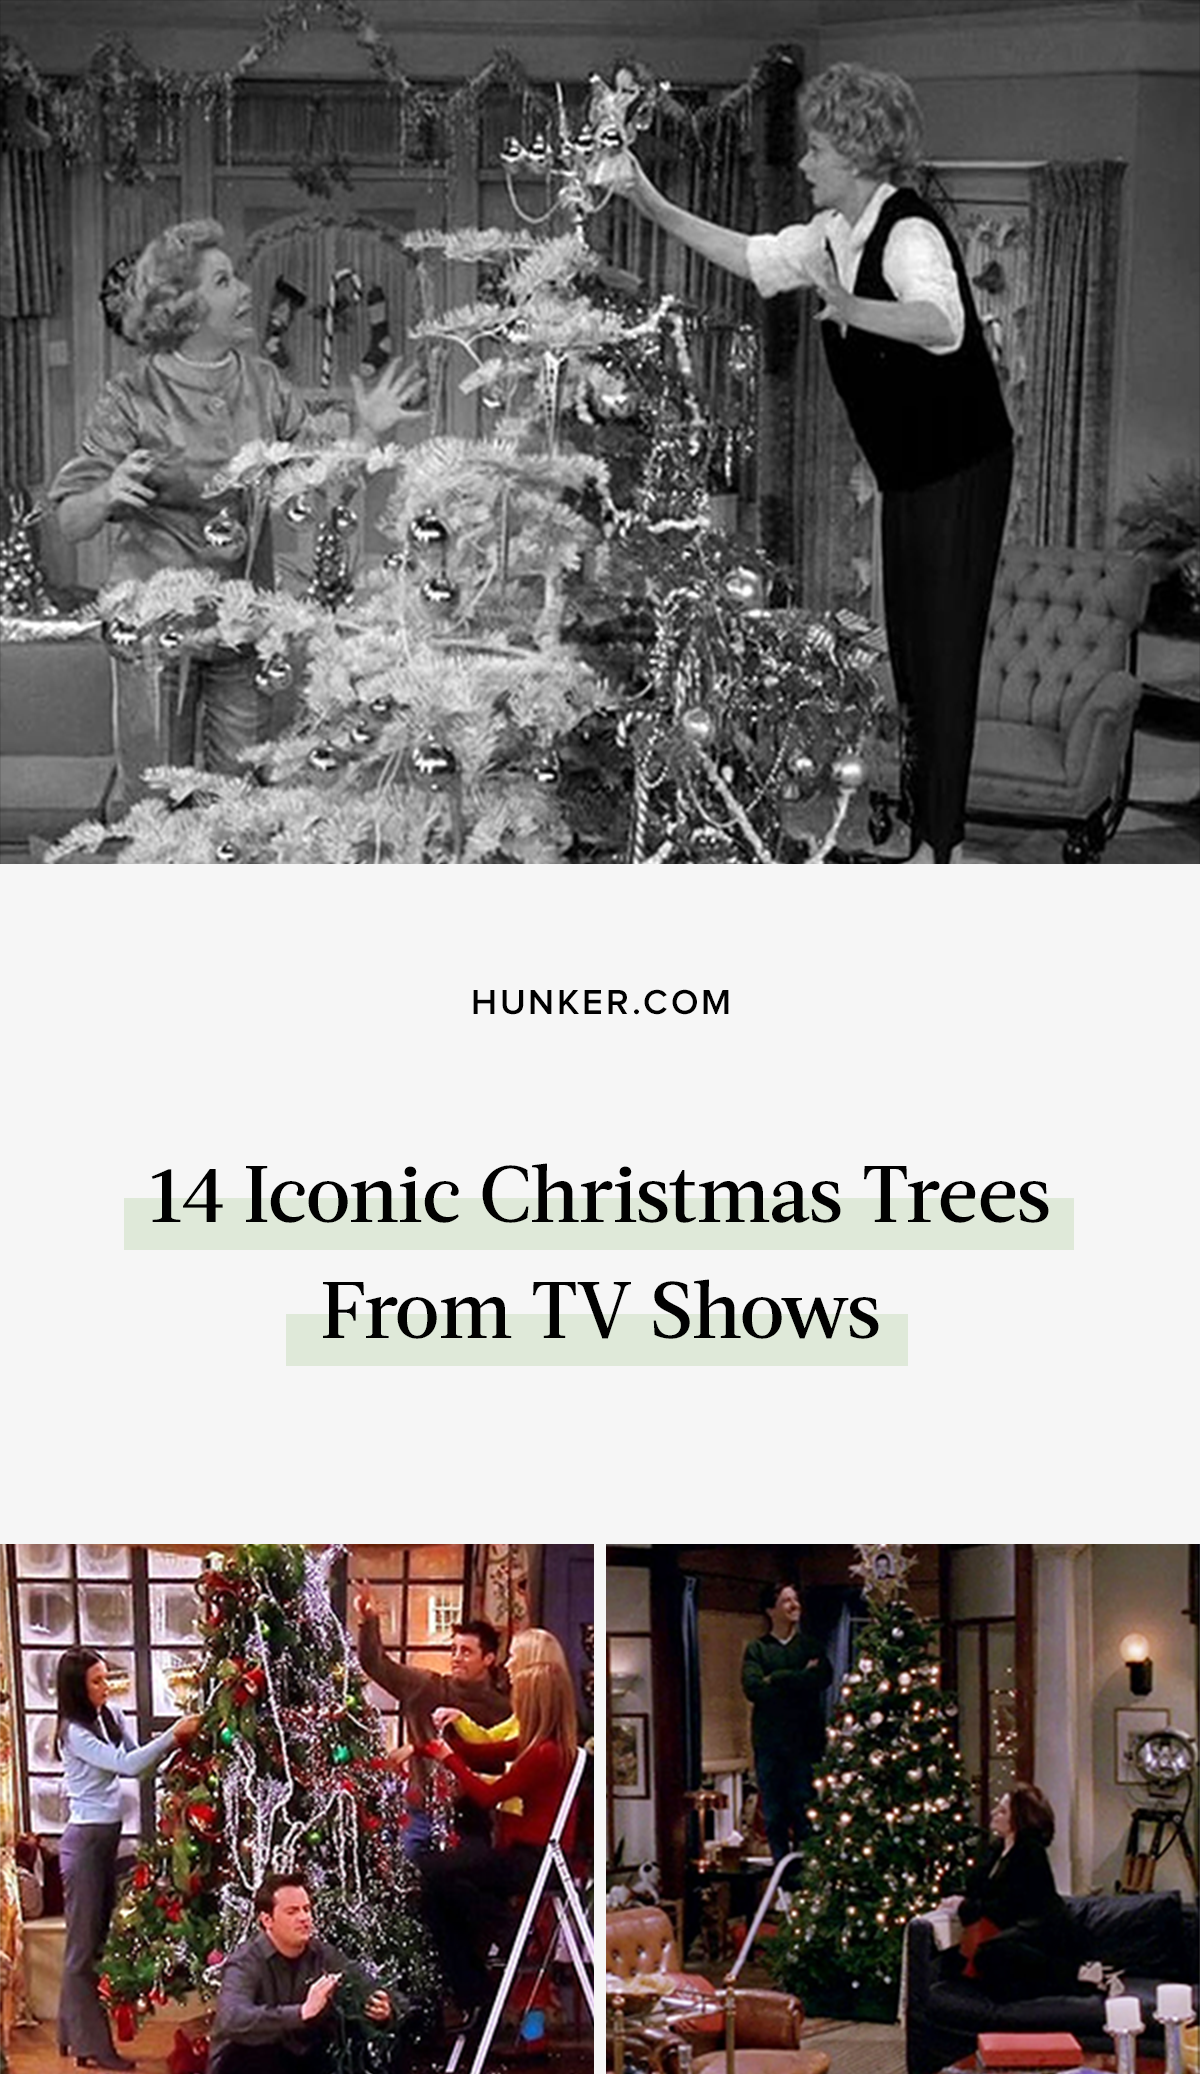 In addition to seeing how our favorite characters celebrate Christmas, we love seeing what their tree looks like. Here's a look at some of our favorite trees throughout the years. #hunkerhome #christmastree #televisionchristmastree #iconicchristmastree #christmastree